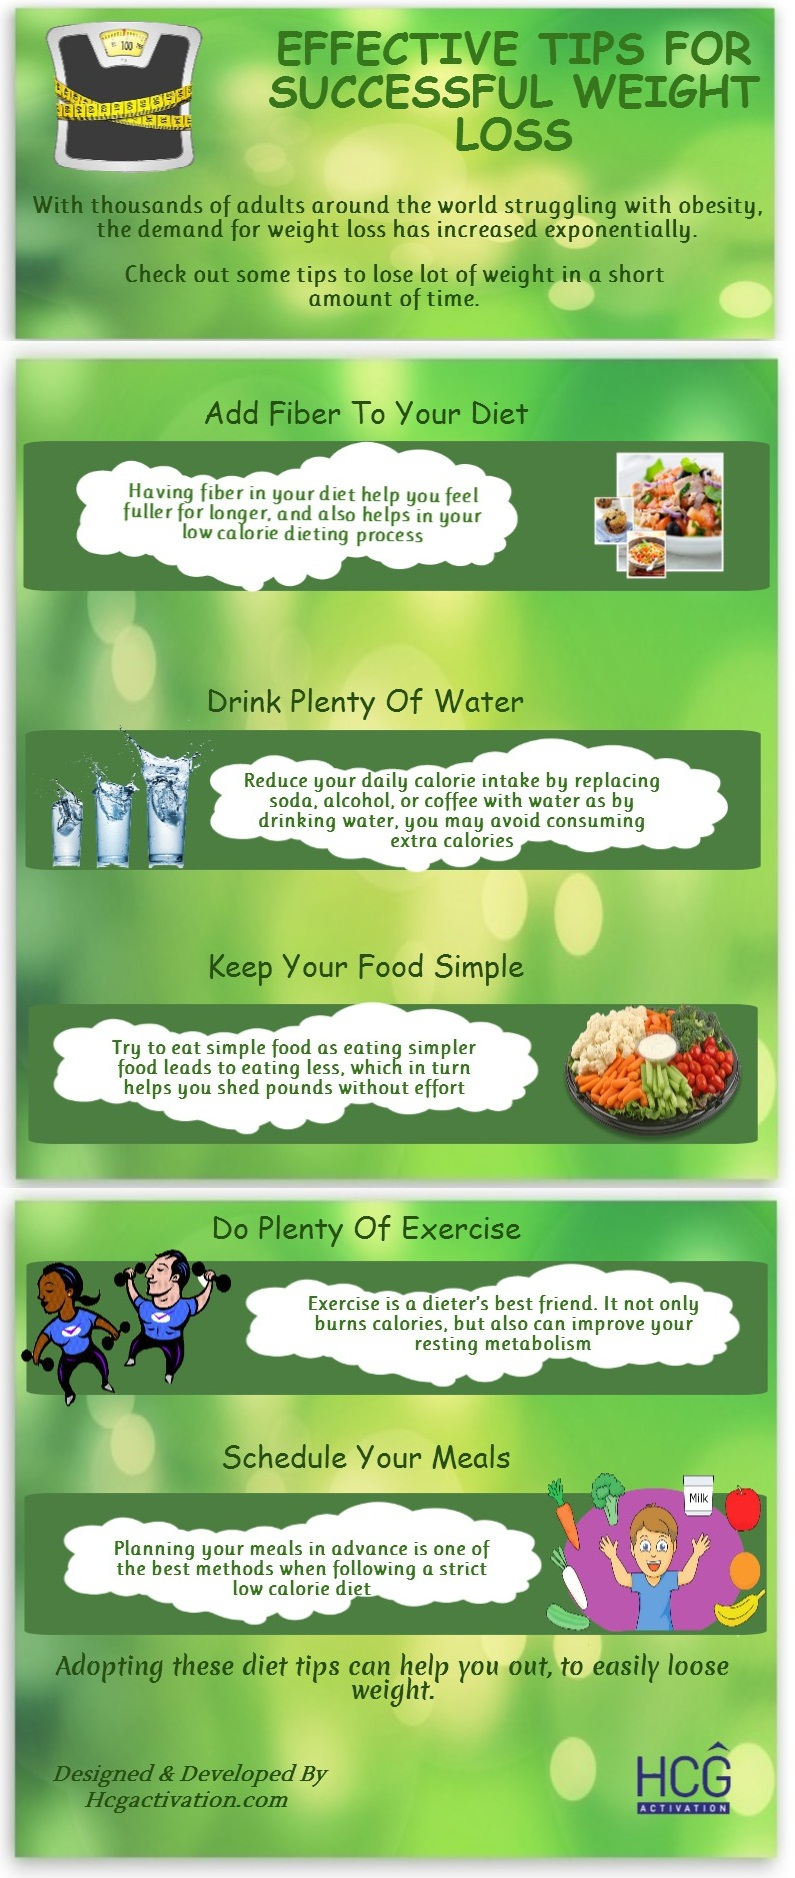 Effective Tips For Successful Weight Loss